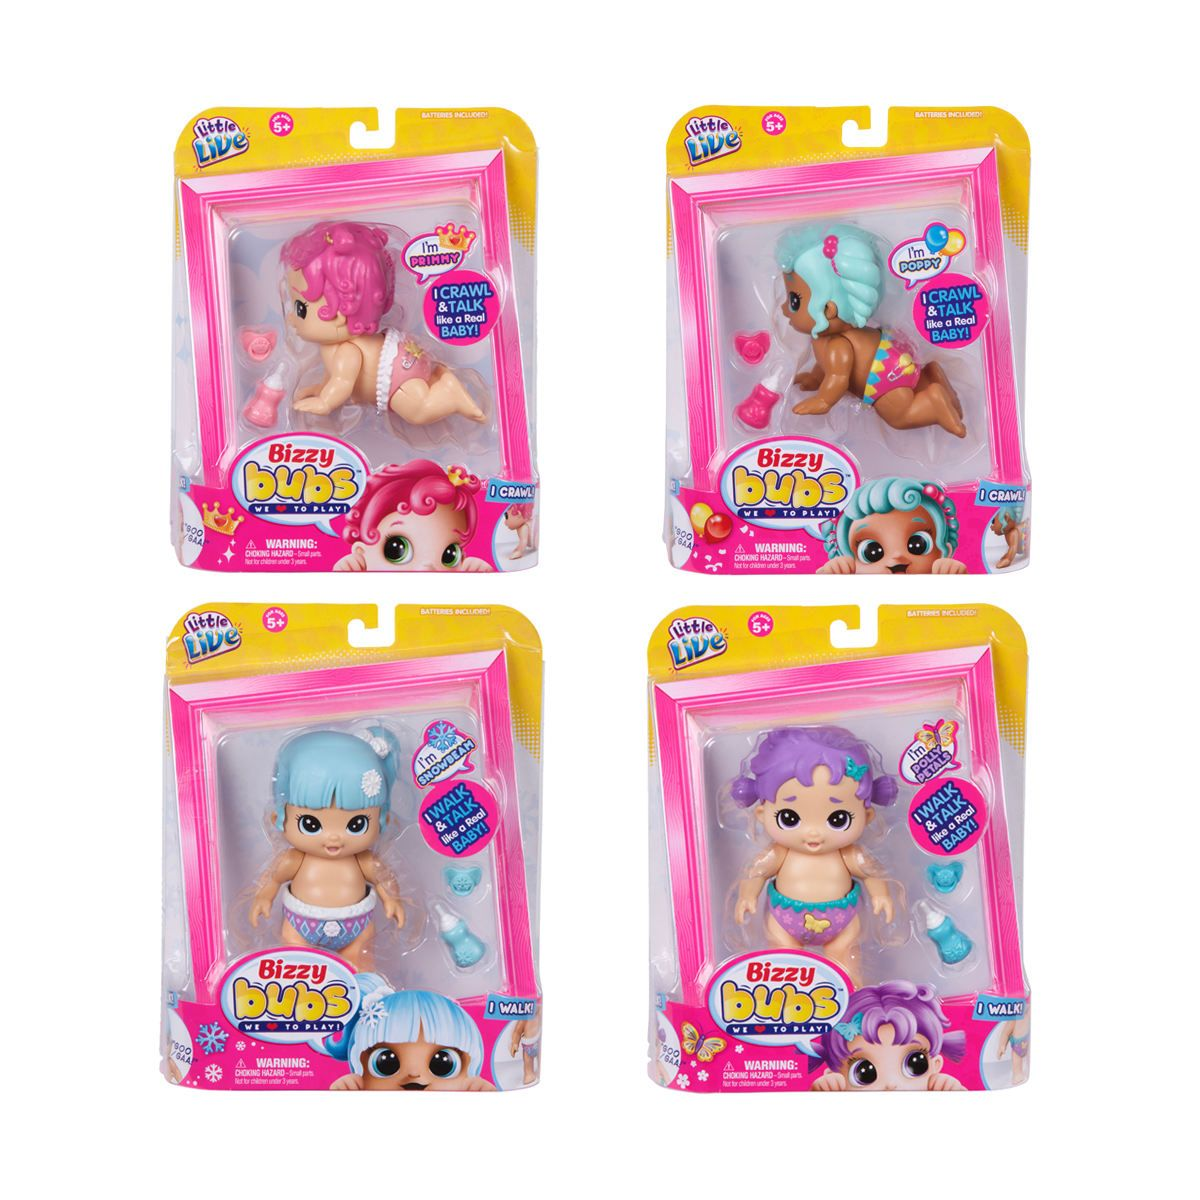 Little Live Bizzy Bubs Baby Doll Assorted Kmart Baby Dolls